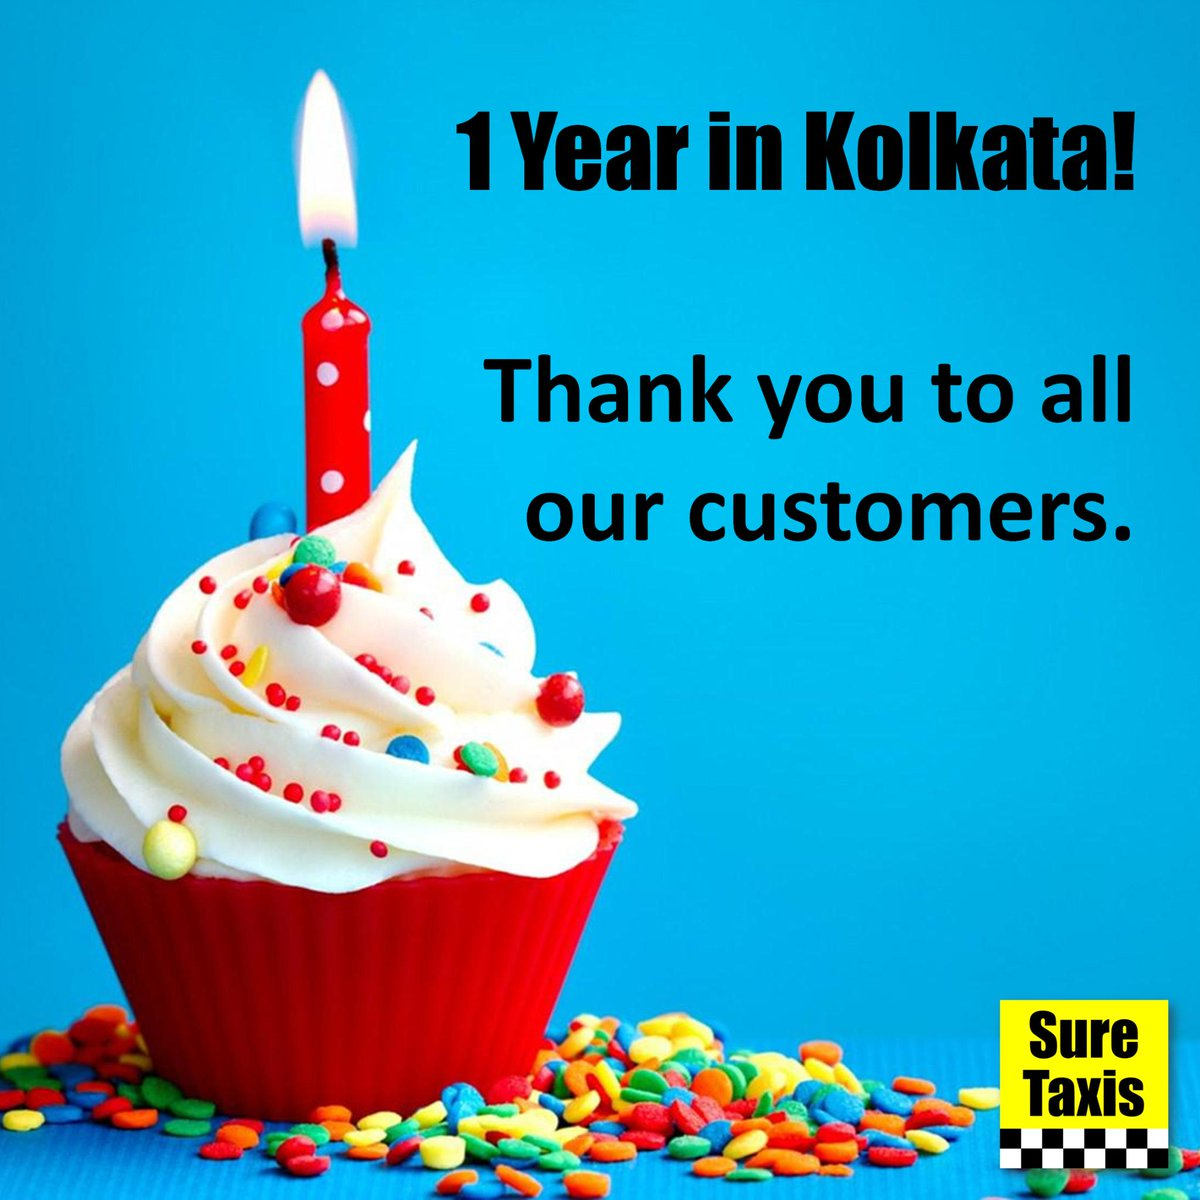 Today, a year ago, we sent our first taxi in Kolkata. Thank you to all our customers for making it possible. http://t.co/qJIaISmm1X